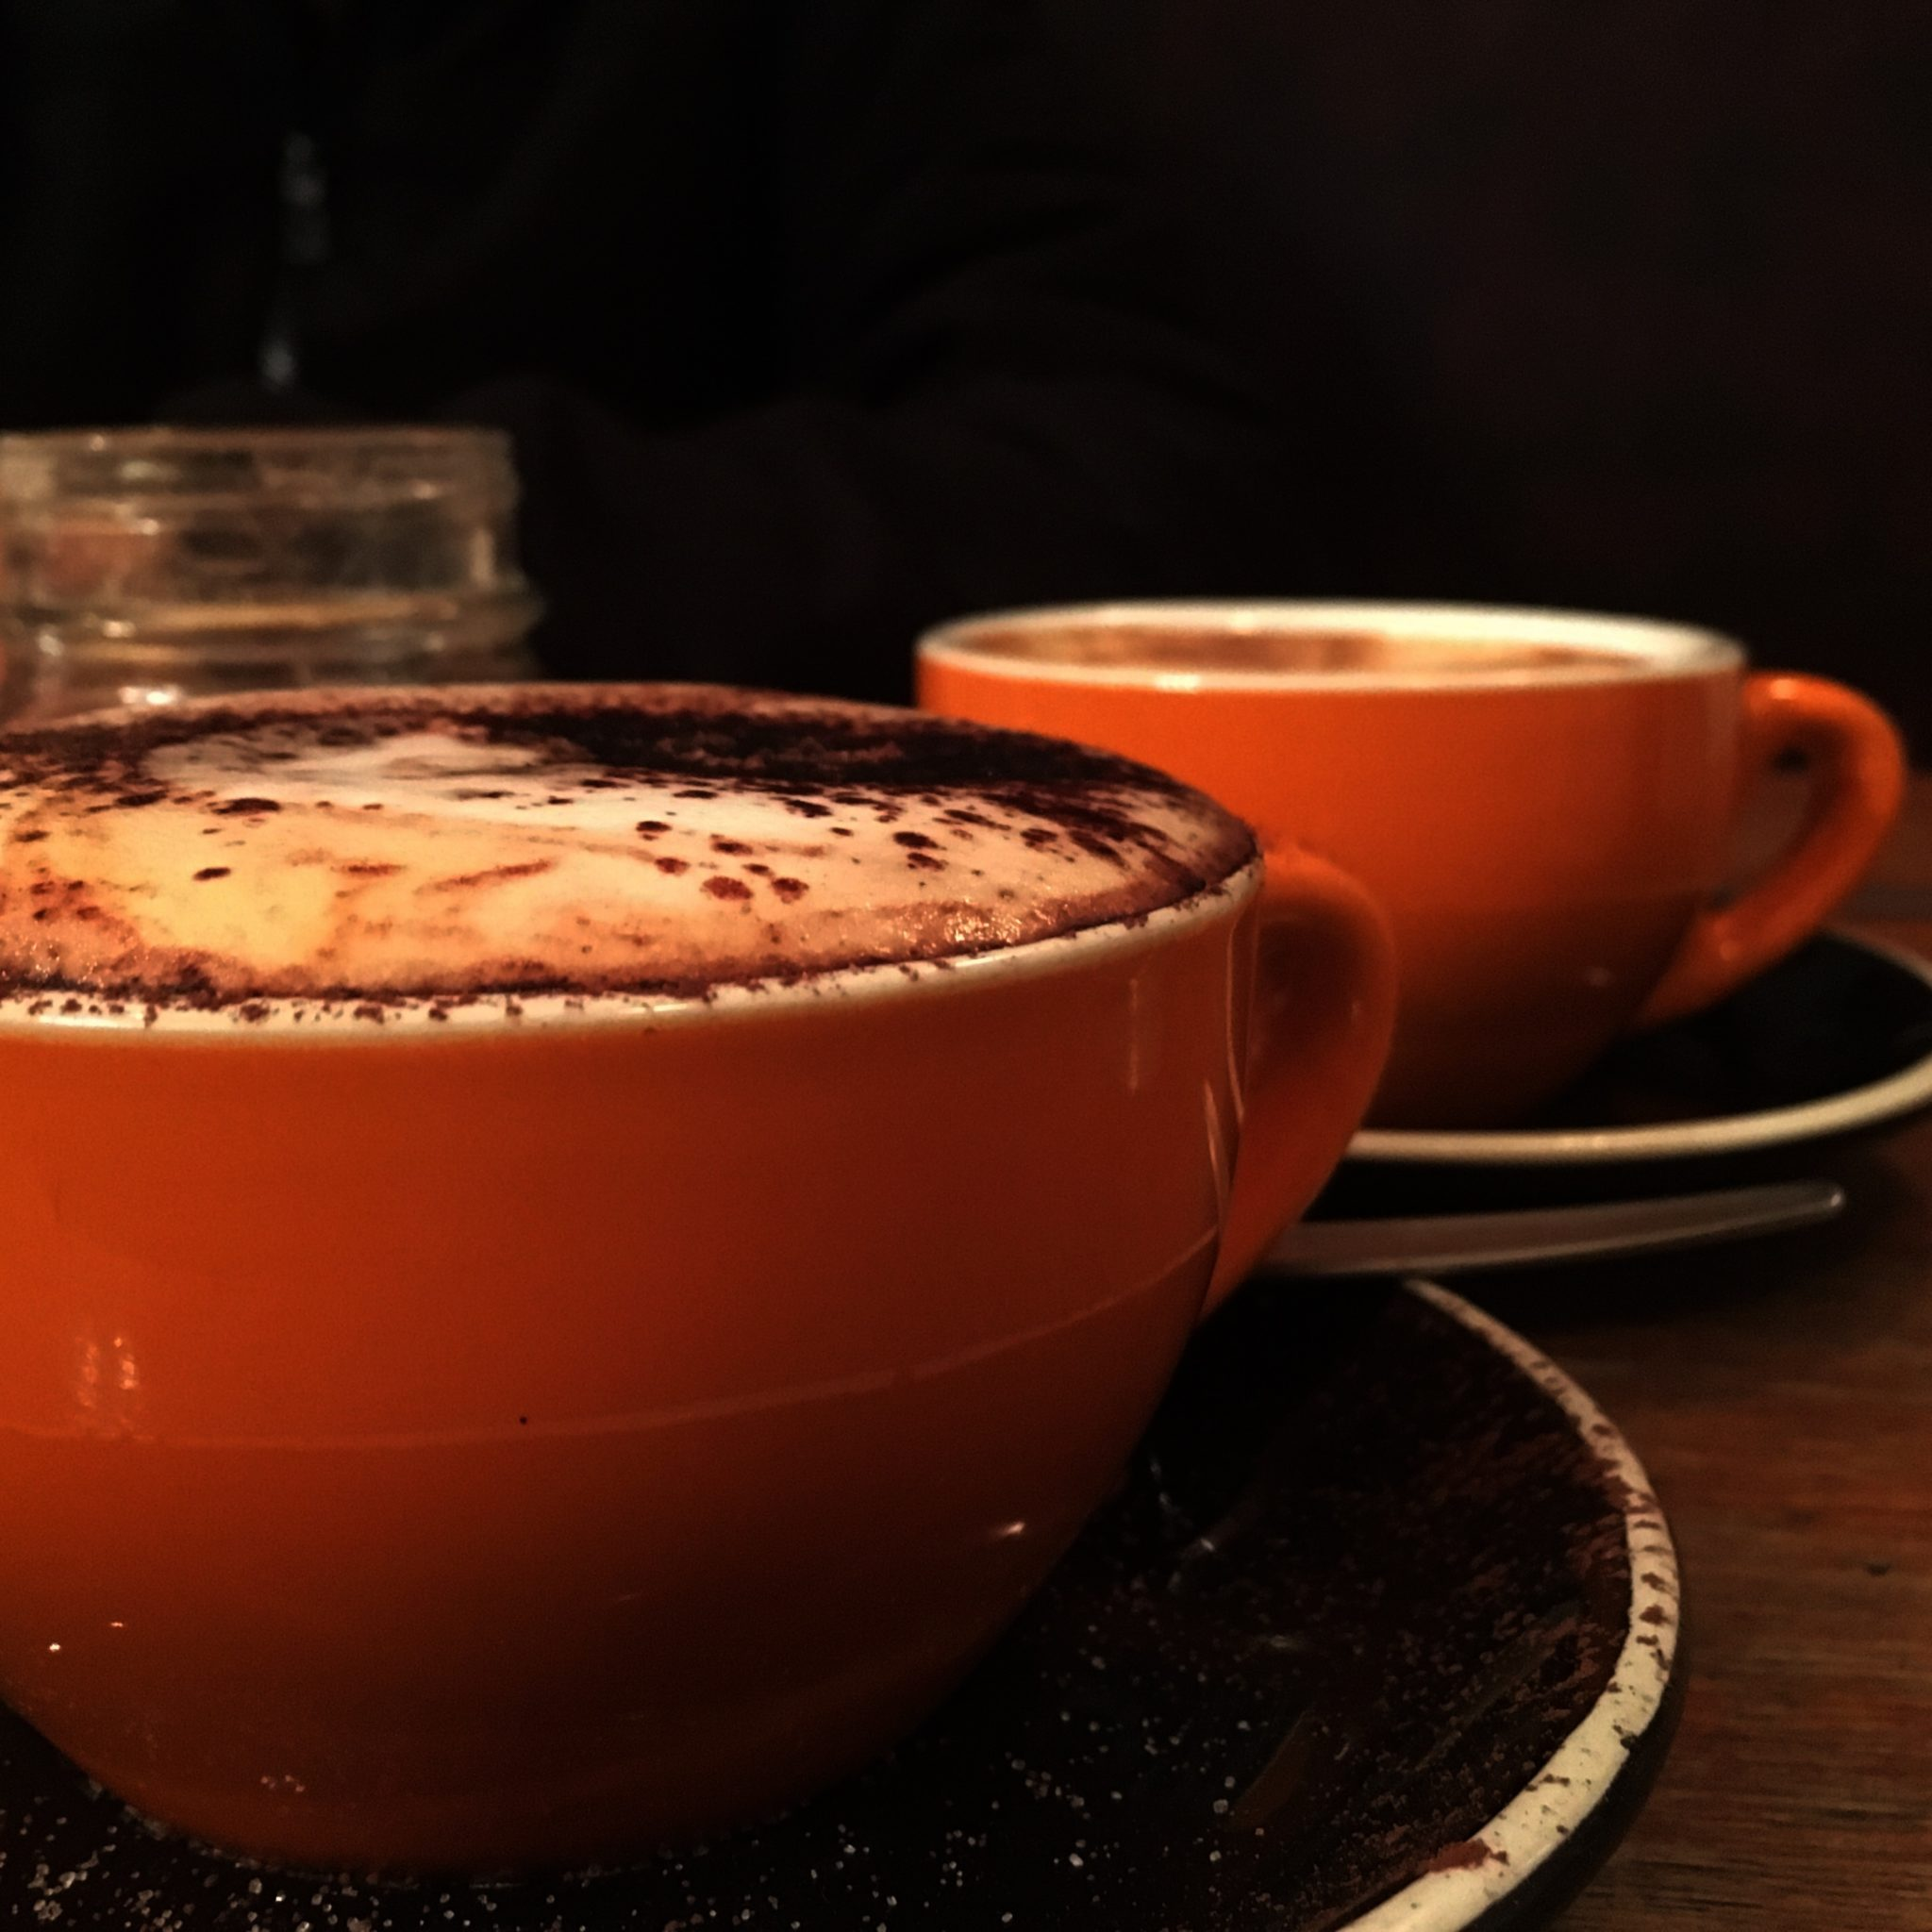 coffee from Cafe Segovia in Melbourne